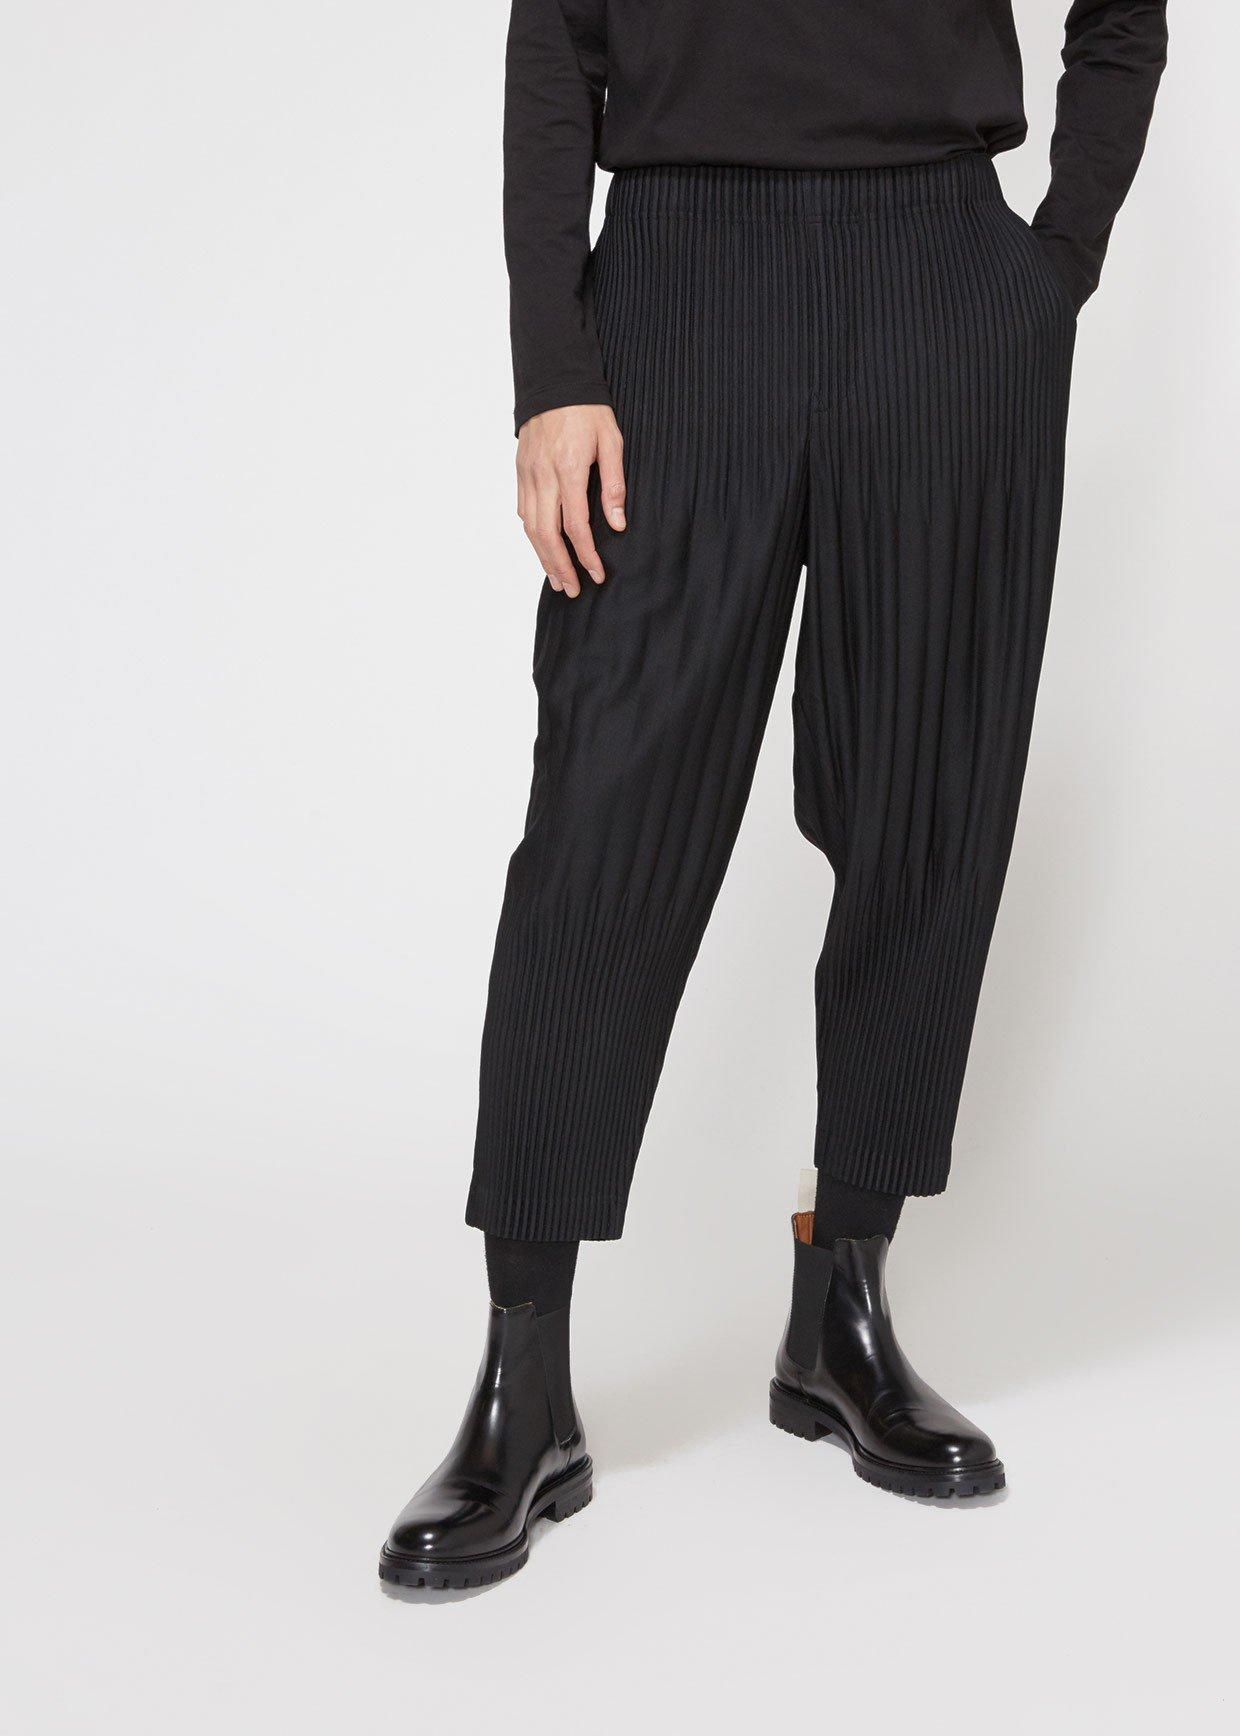 b3a9ef6bf Lyst - Homme Plissé Issey Miyake Basics Pleated Tapered Trouser in ...